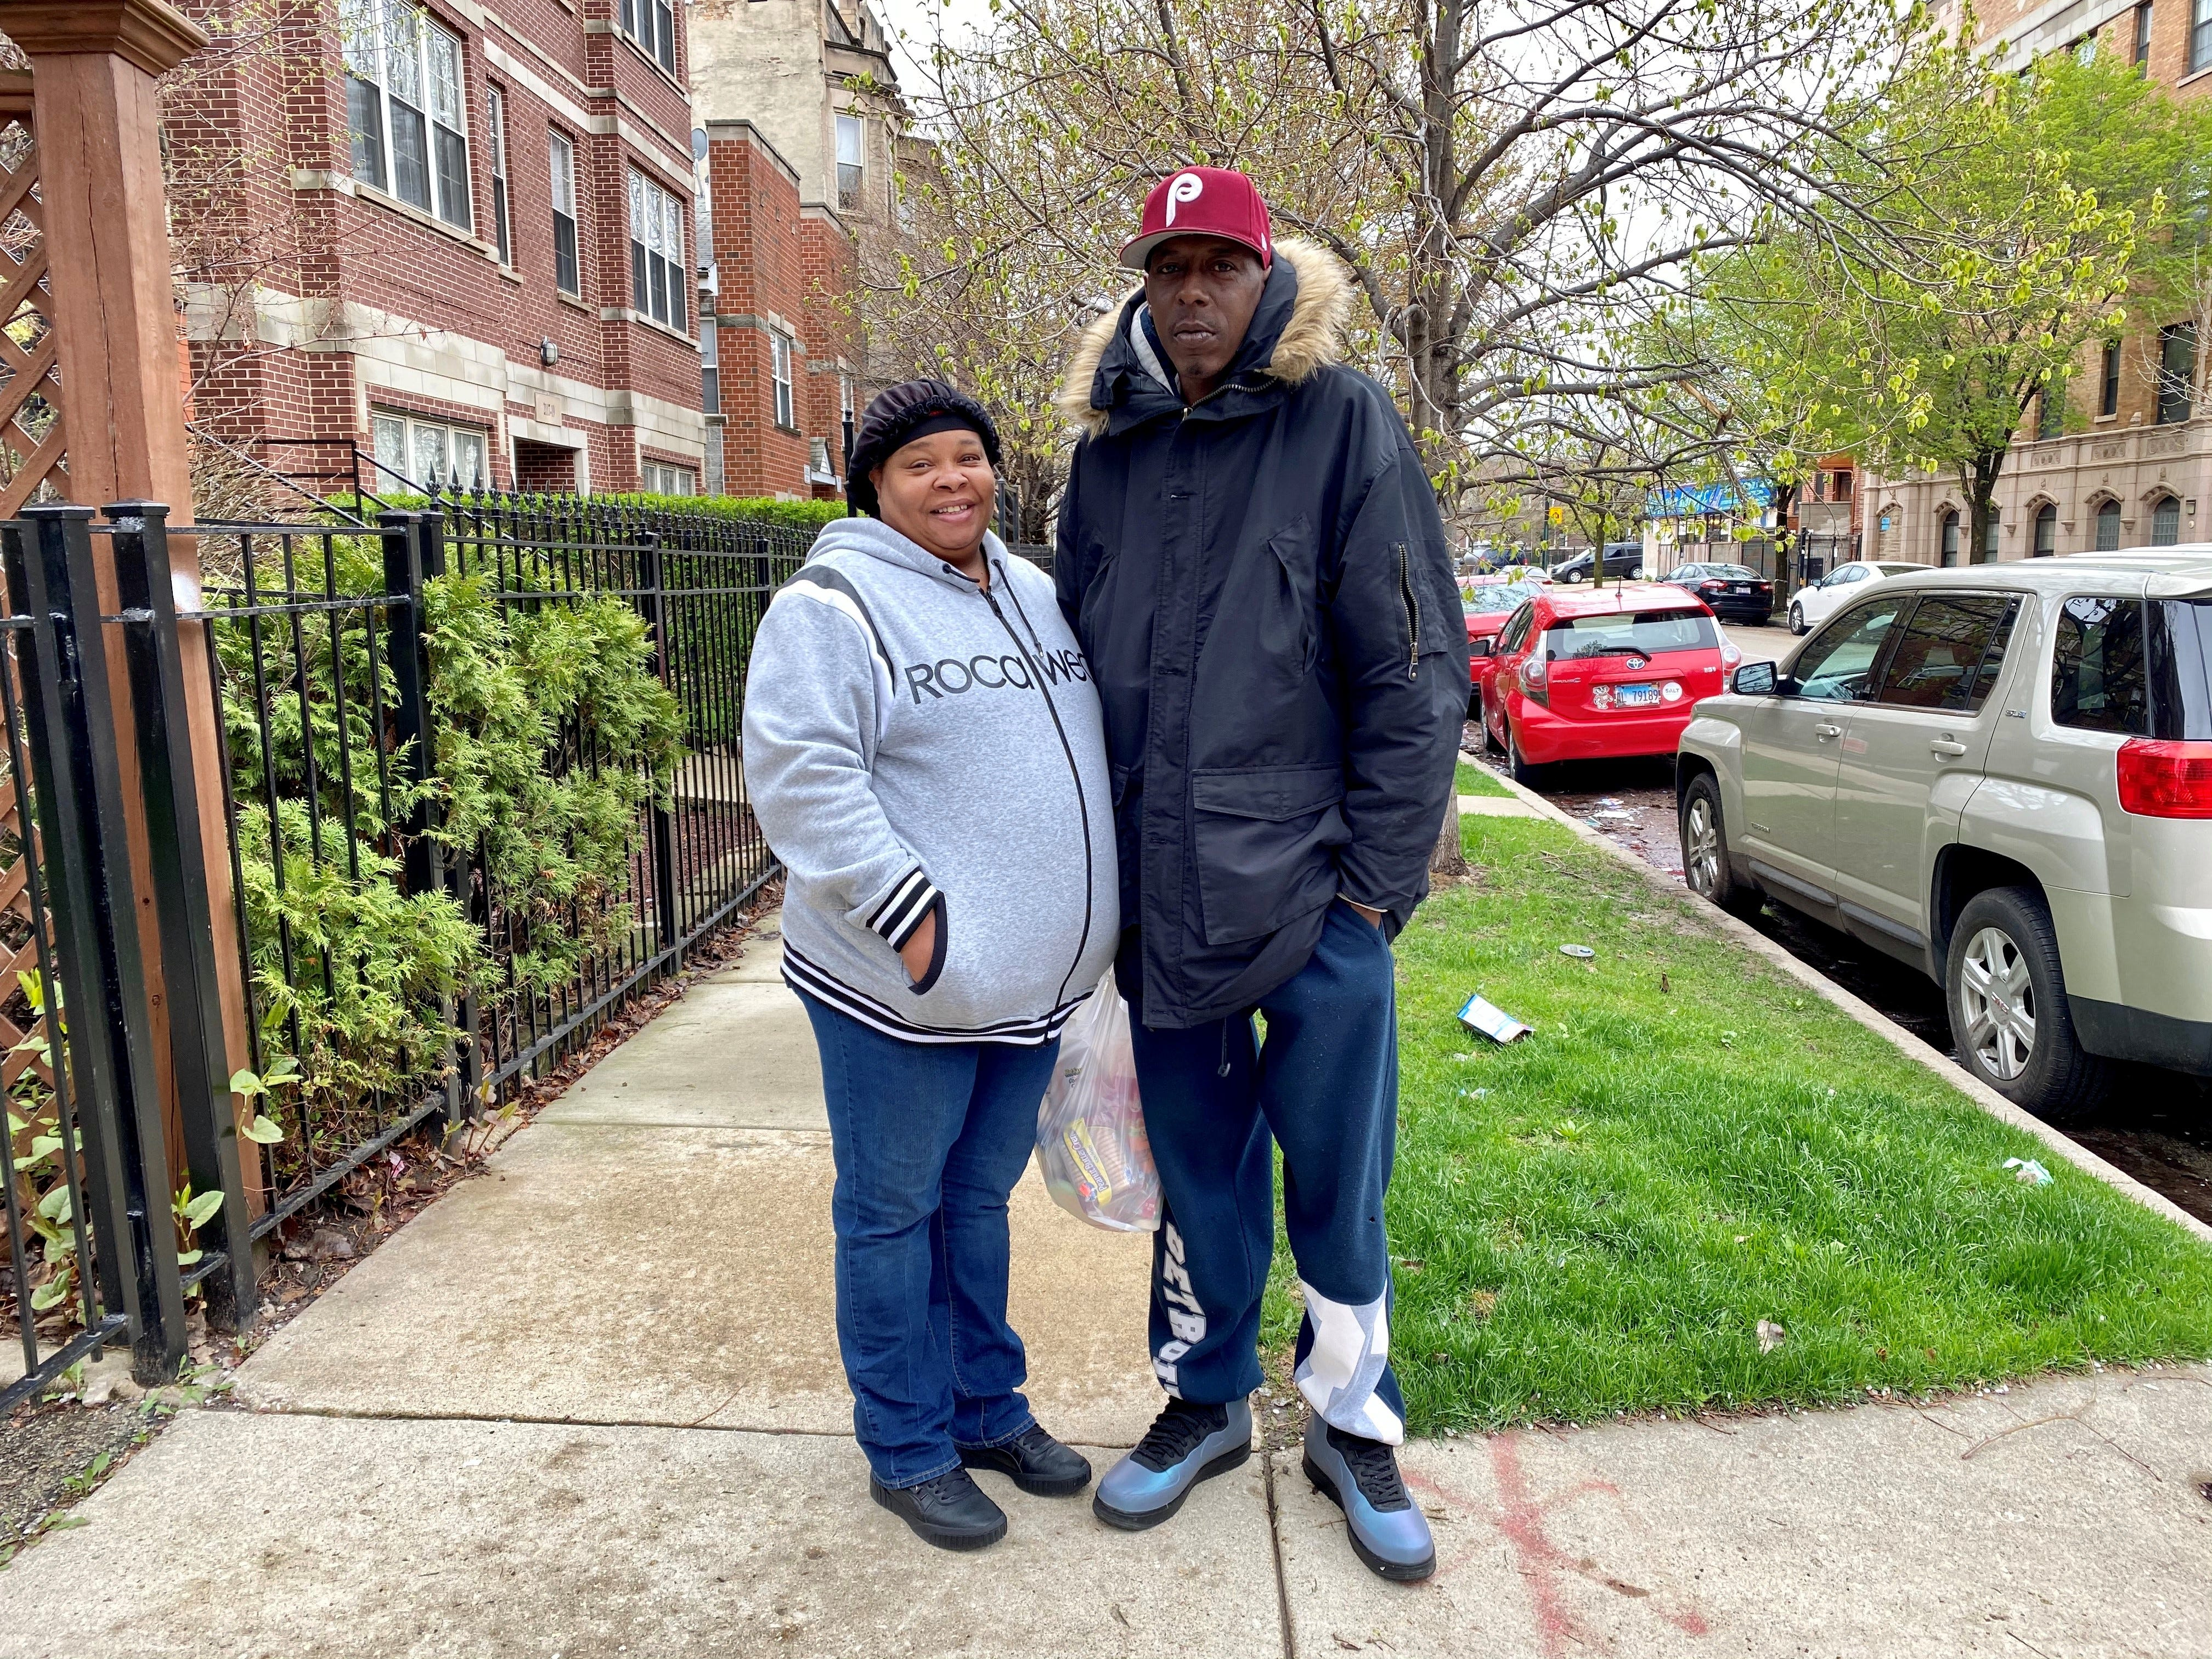 East Garfield Park residents Jimmy and Rachel Walker head home from the market in Chicago, Ill. on April 30, 2020.